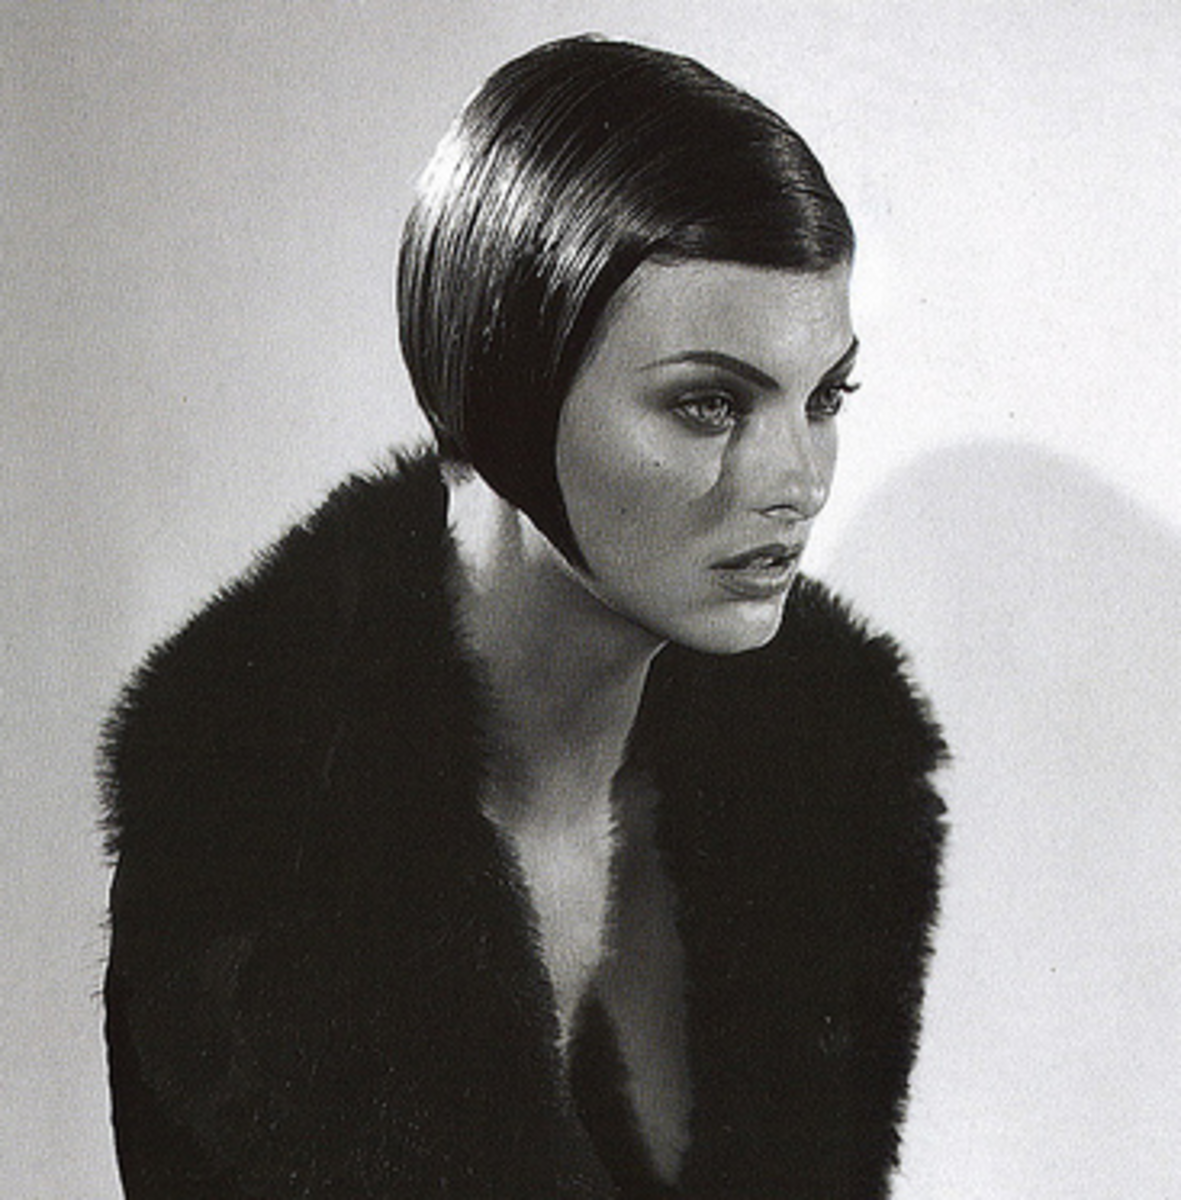 Linda Evangelista (circa 1995) and the iconic Vidal Sassoon Bob.